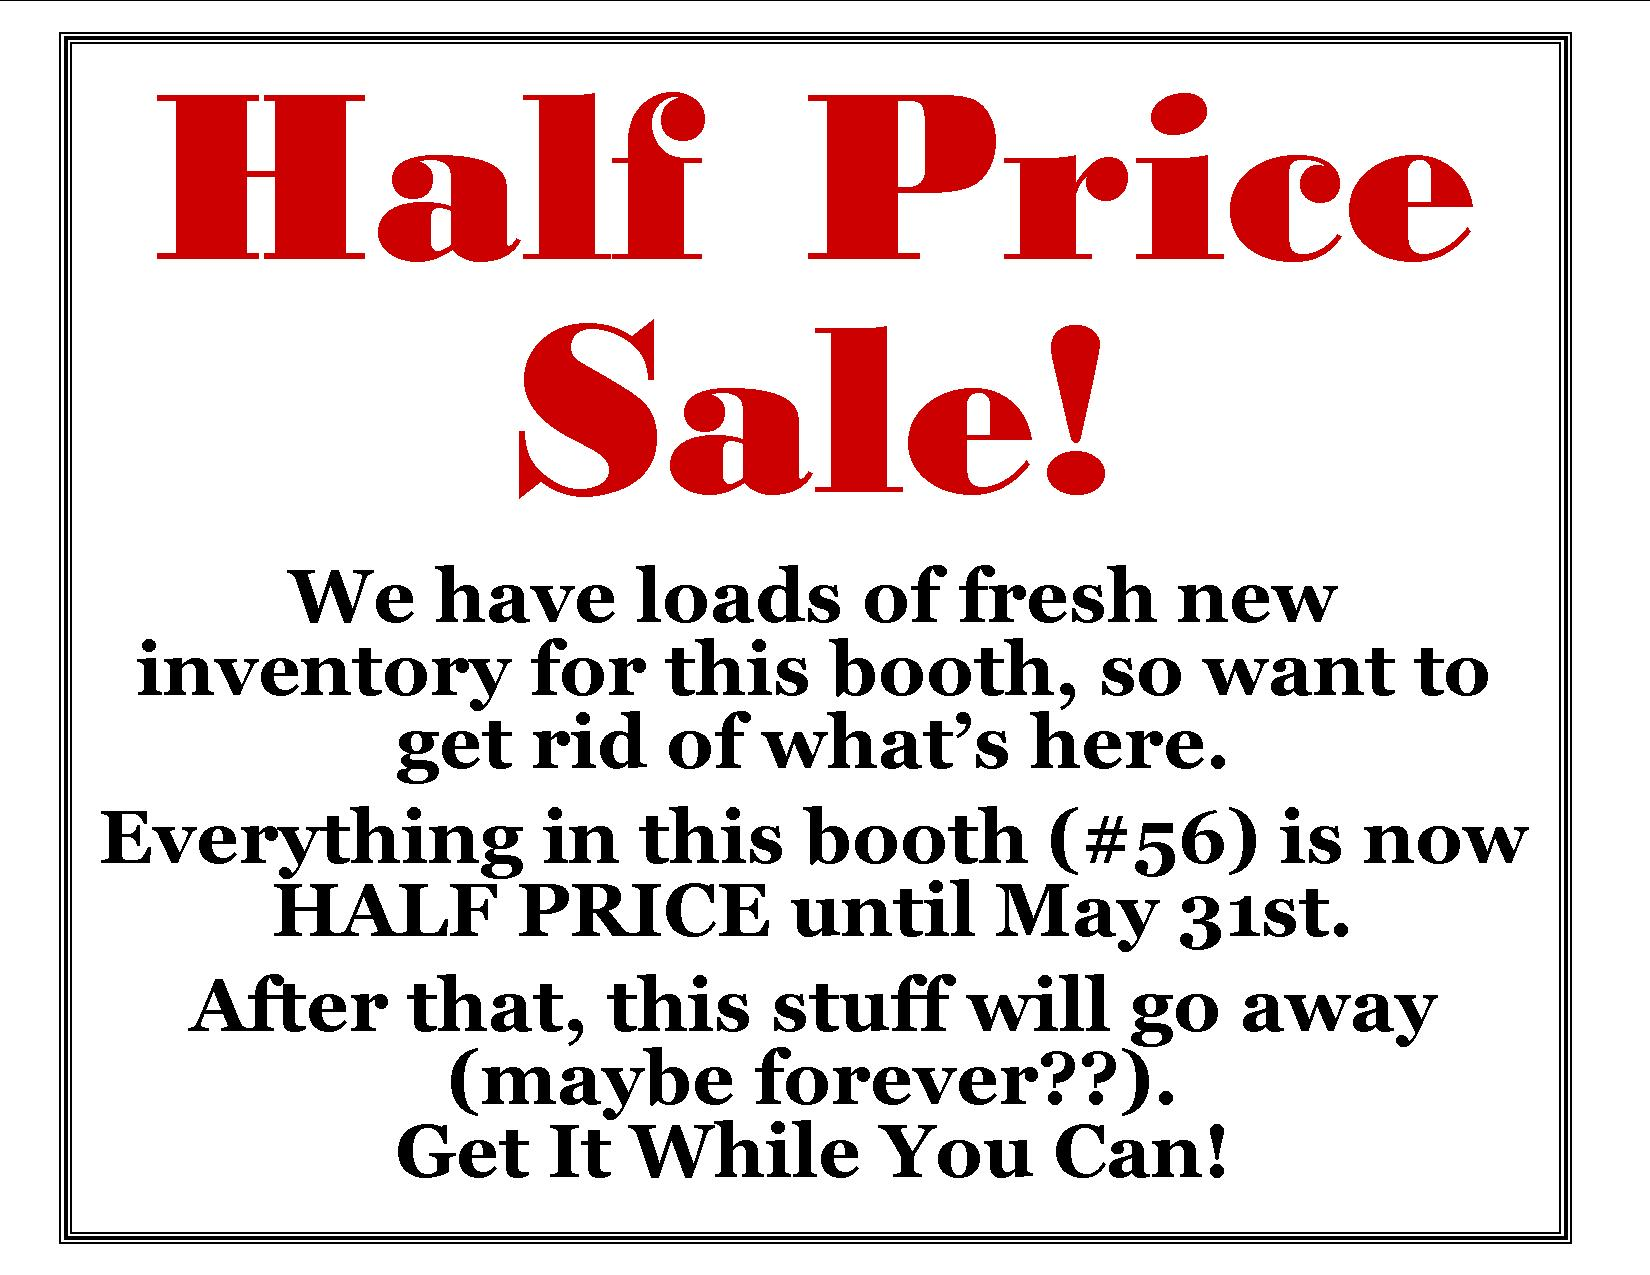 Half Price Sale at Our Booth at the Undercover Flea Market & Antique Mall in Oxford!